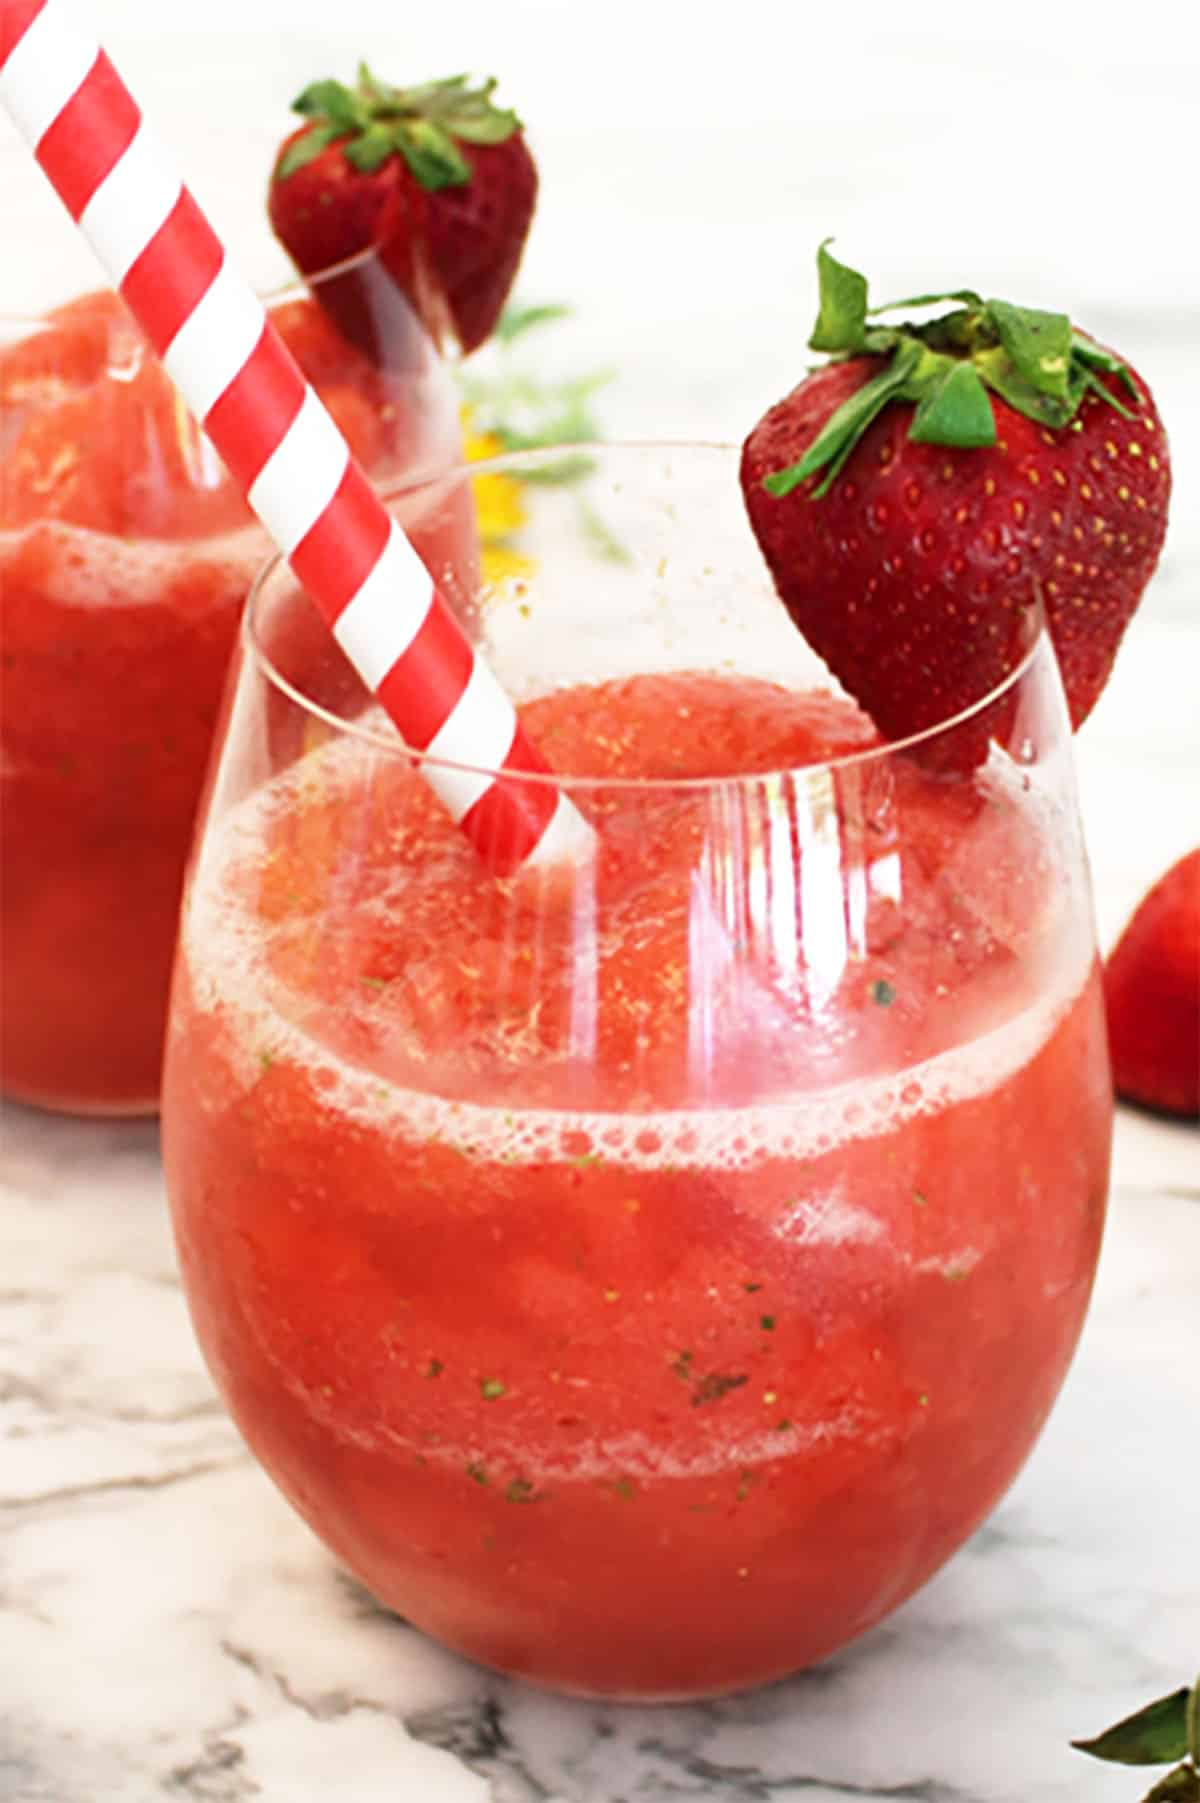 Closeup of strawberry mule with strawberry garnish and red and white straw.